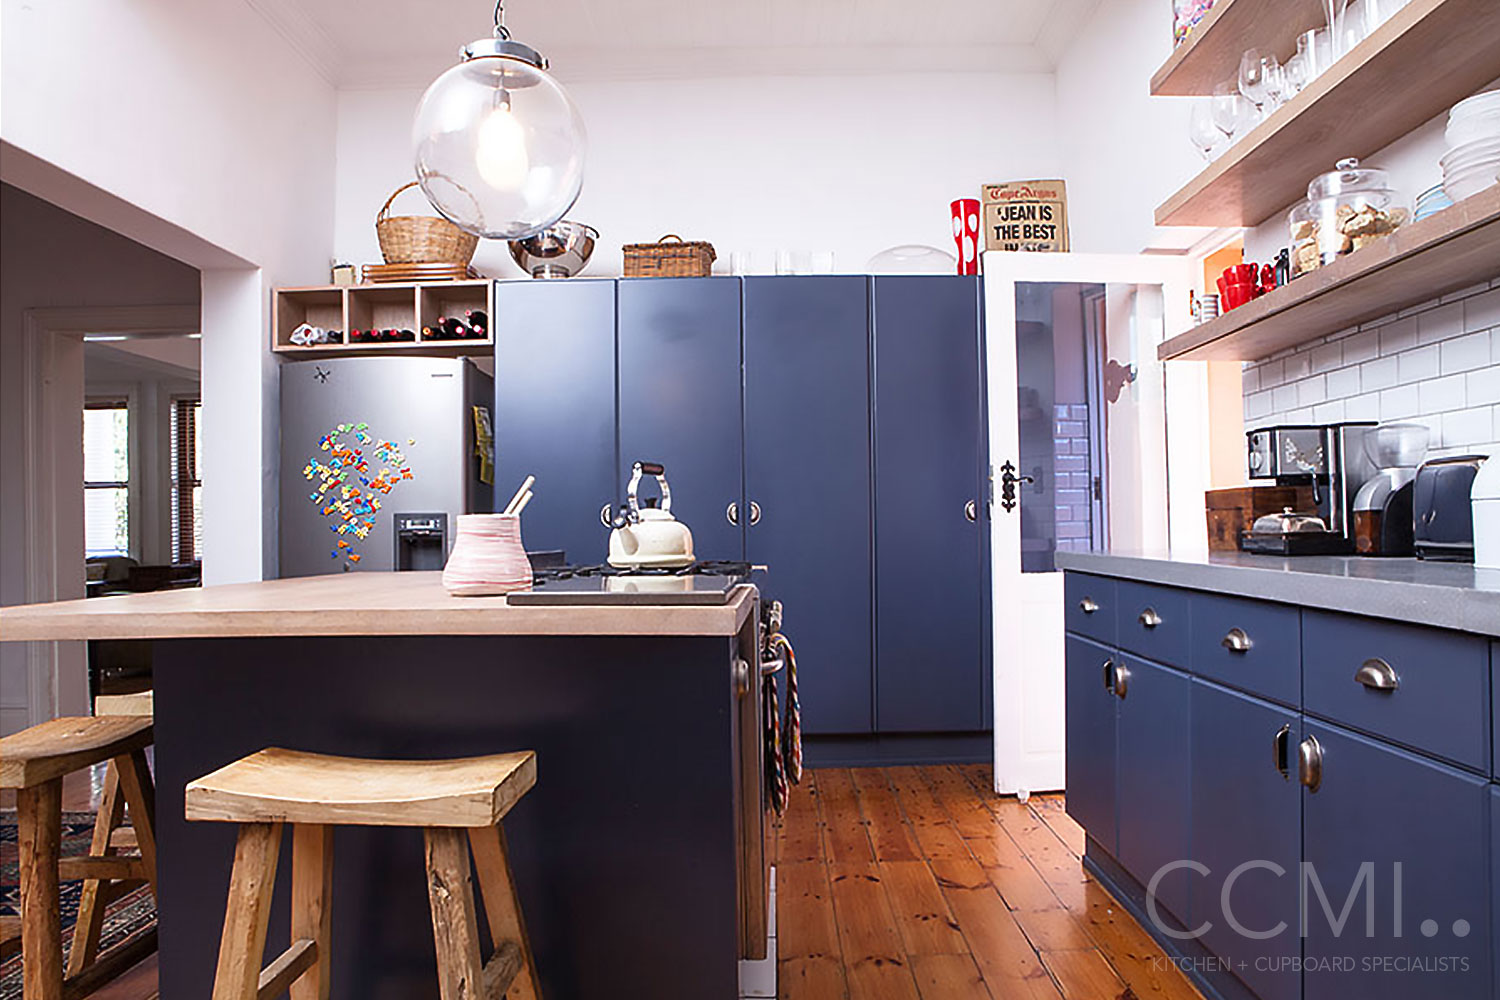 flat panel kitchen cabinets with vintage styled handles create a twist on the traditional farmstyle kitchen